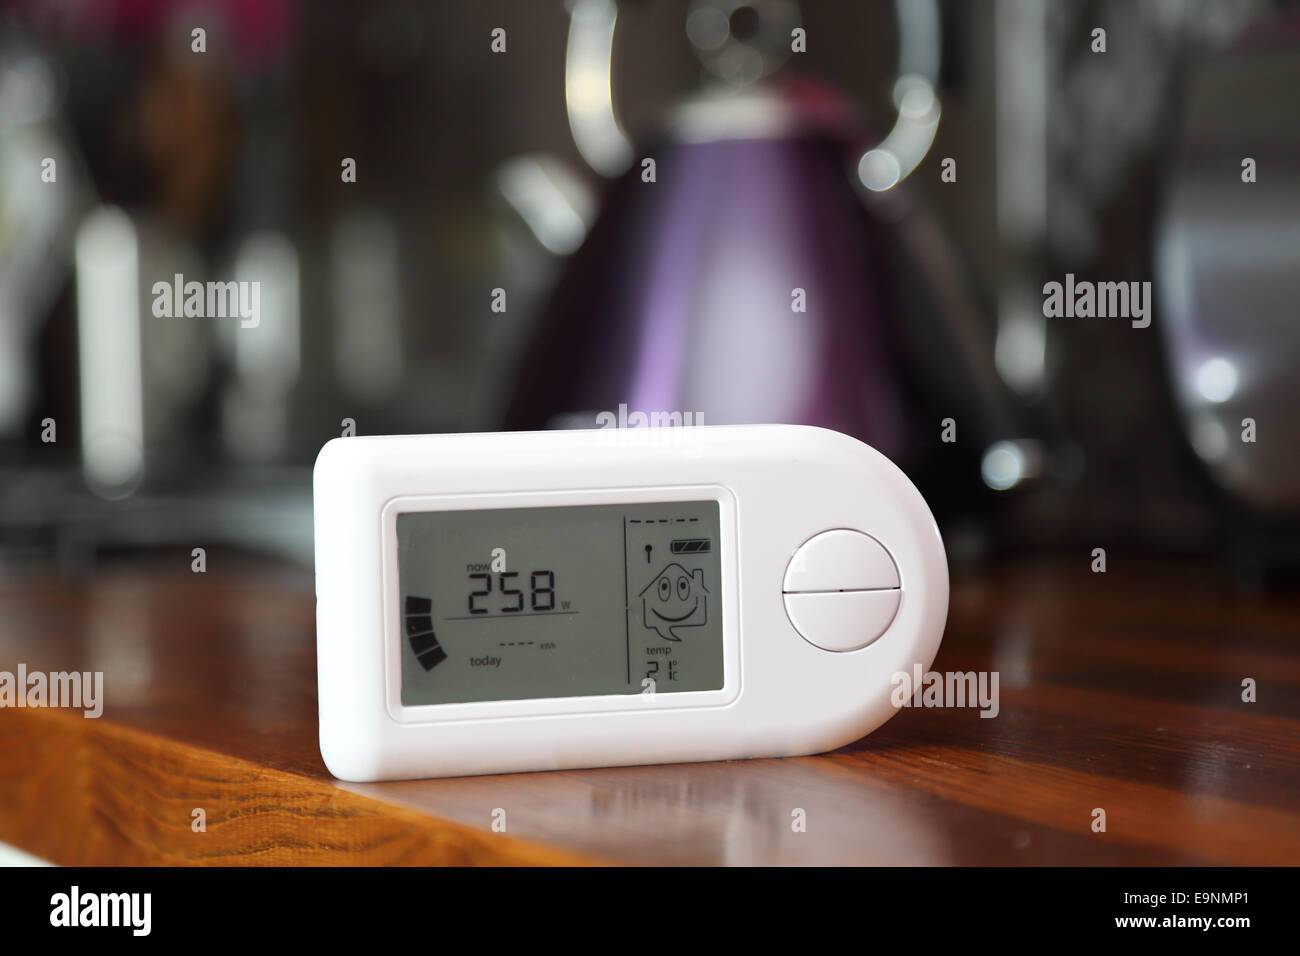 Close-up of a domestic electricity monitor in a kitchen showing a low level of energy consumption 2.58Kw Stock Photo